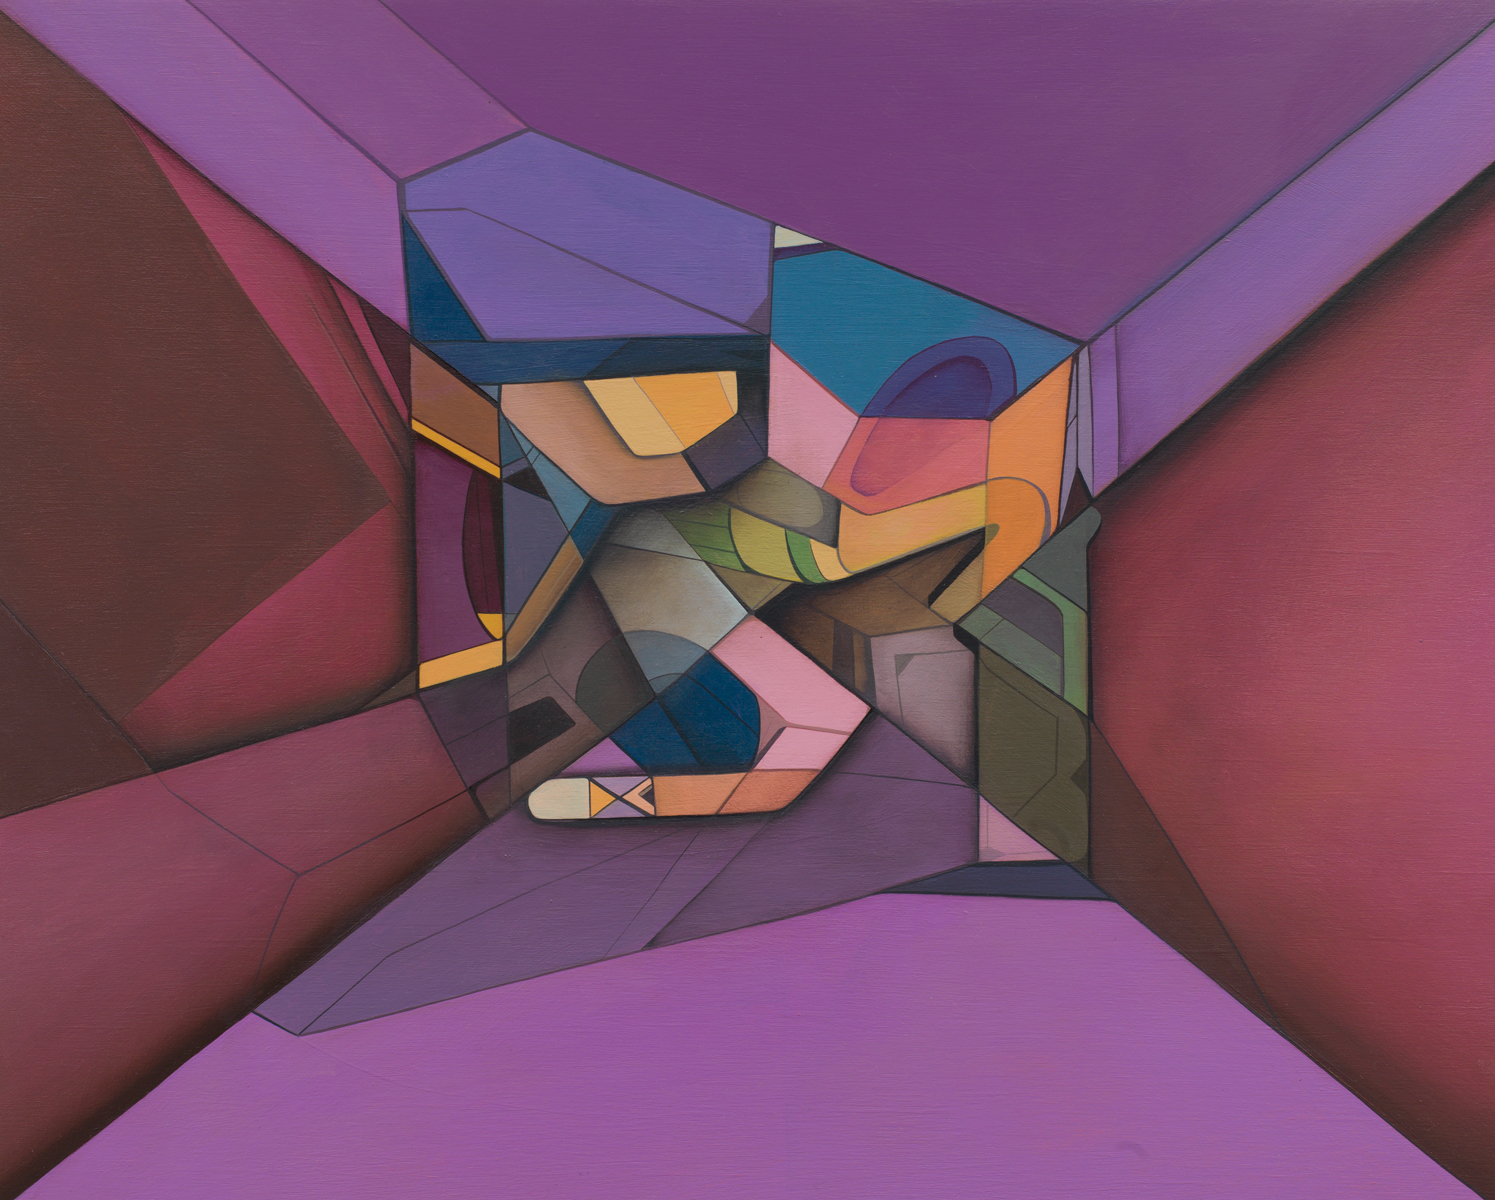 Transition Form 9586 - Acrylic on Panel 16in. x 20in. 2012